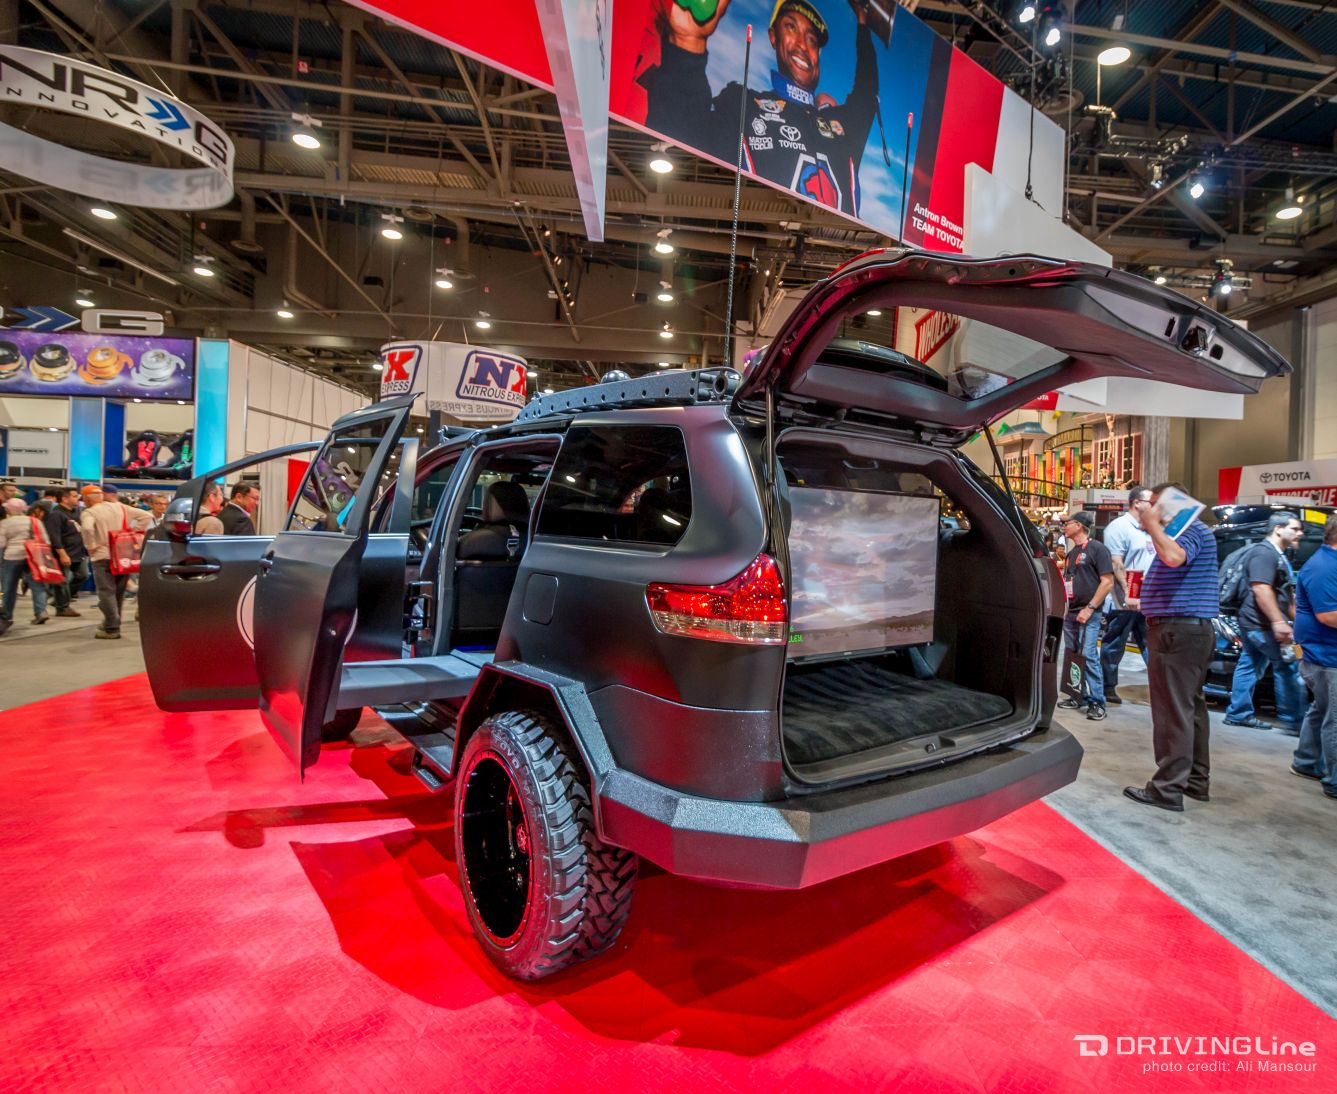 Toyota S 4x4 Sienna Unveiled At Sema 2015 Drivingline